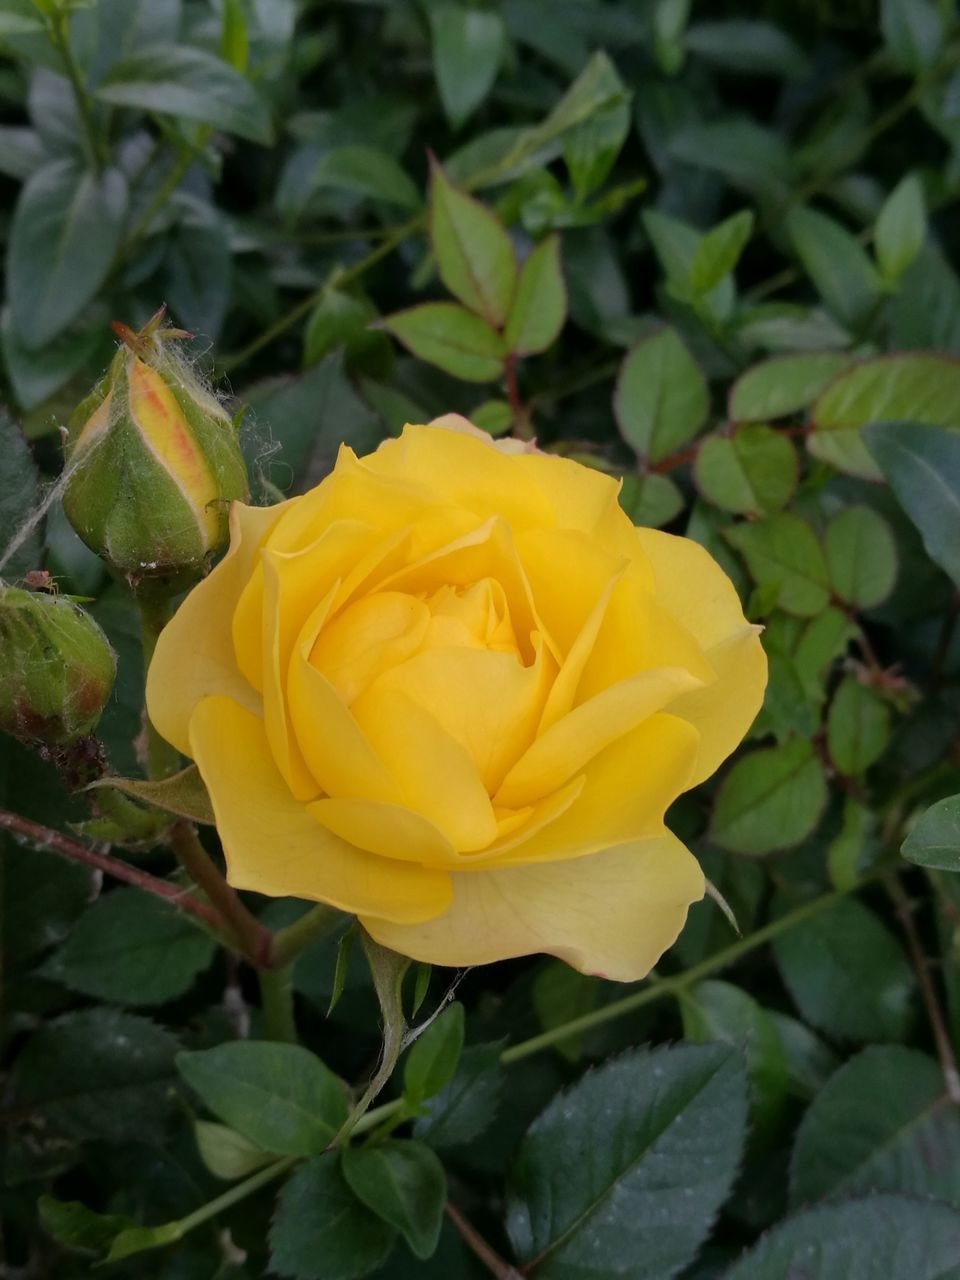 flower, yellow, petal, fragility, nature, beauty in nature, flower head, rose - flower, plant, freshness, growth, love, no people, blooming, close-up, leaf, outdoors, day